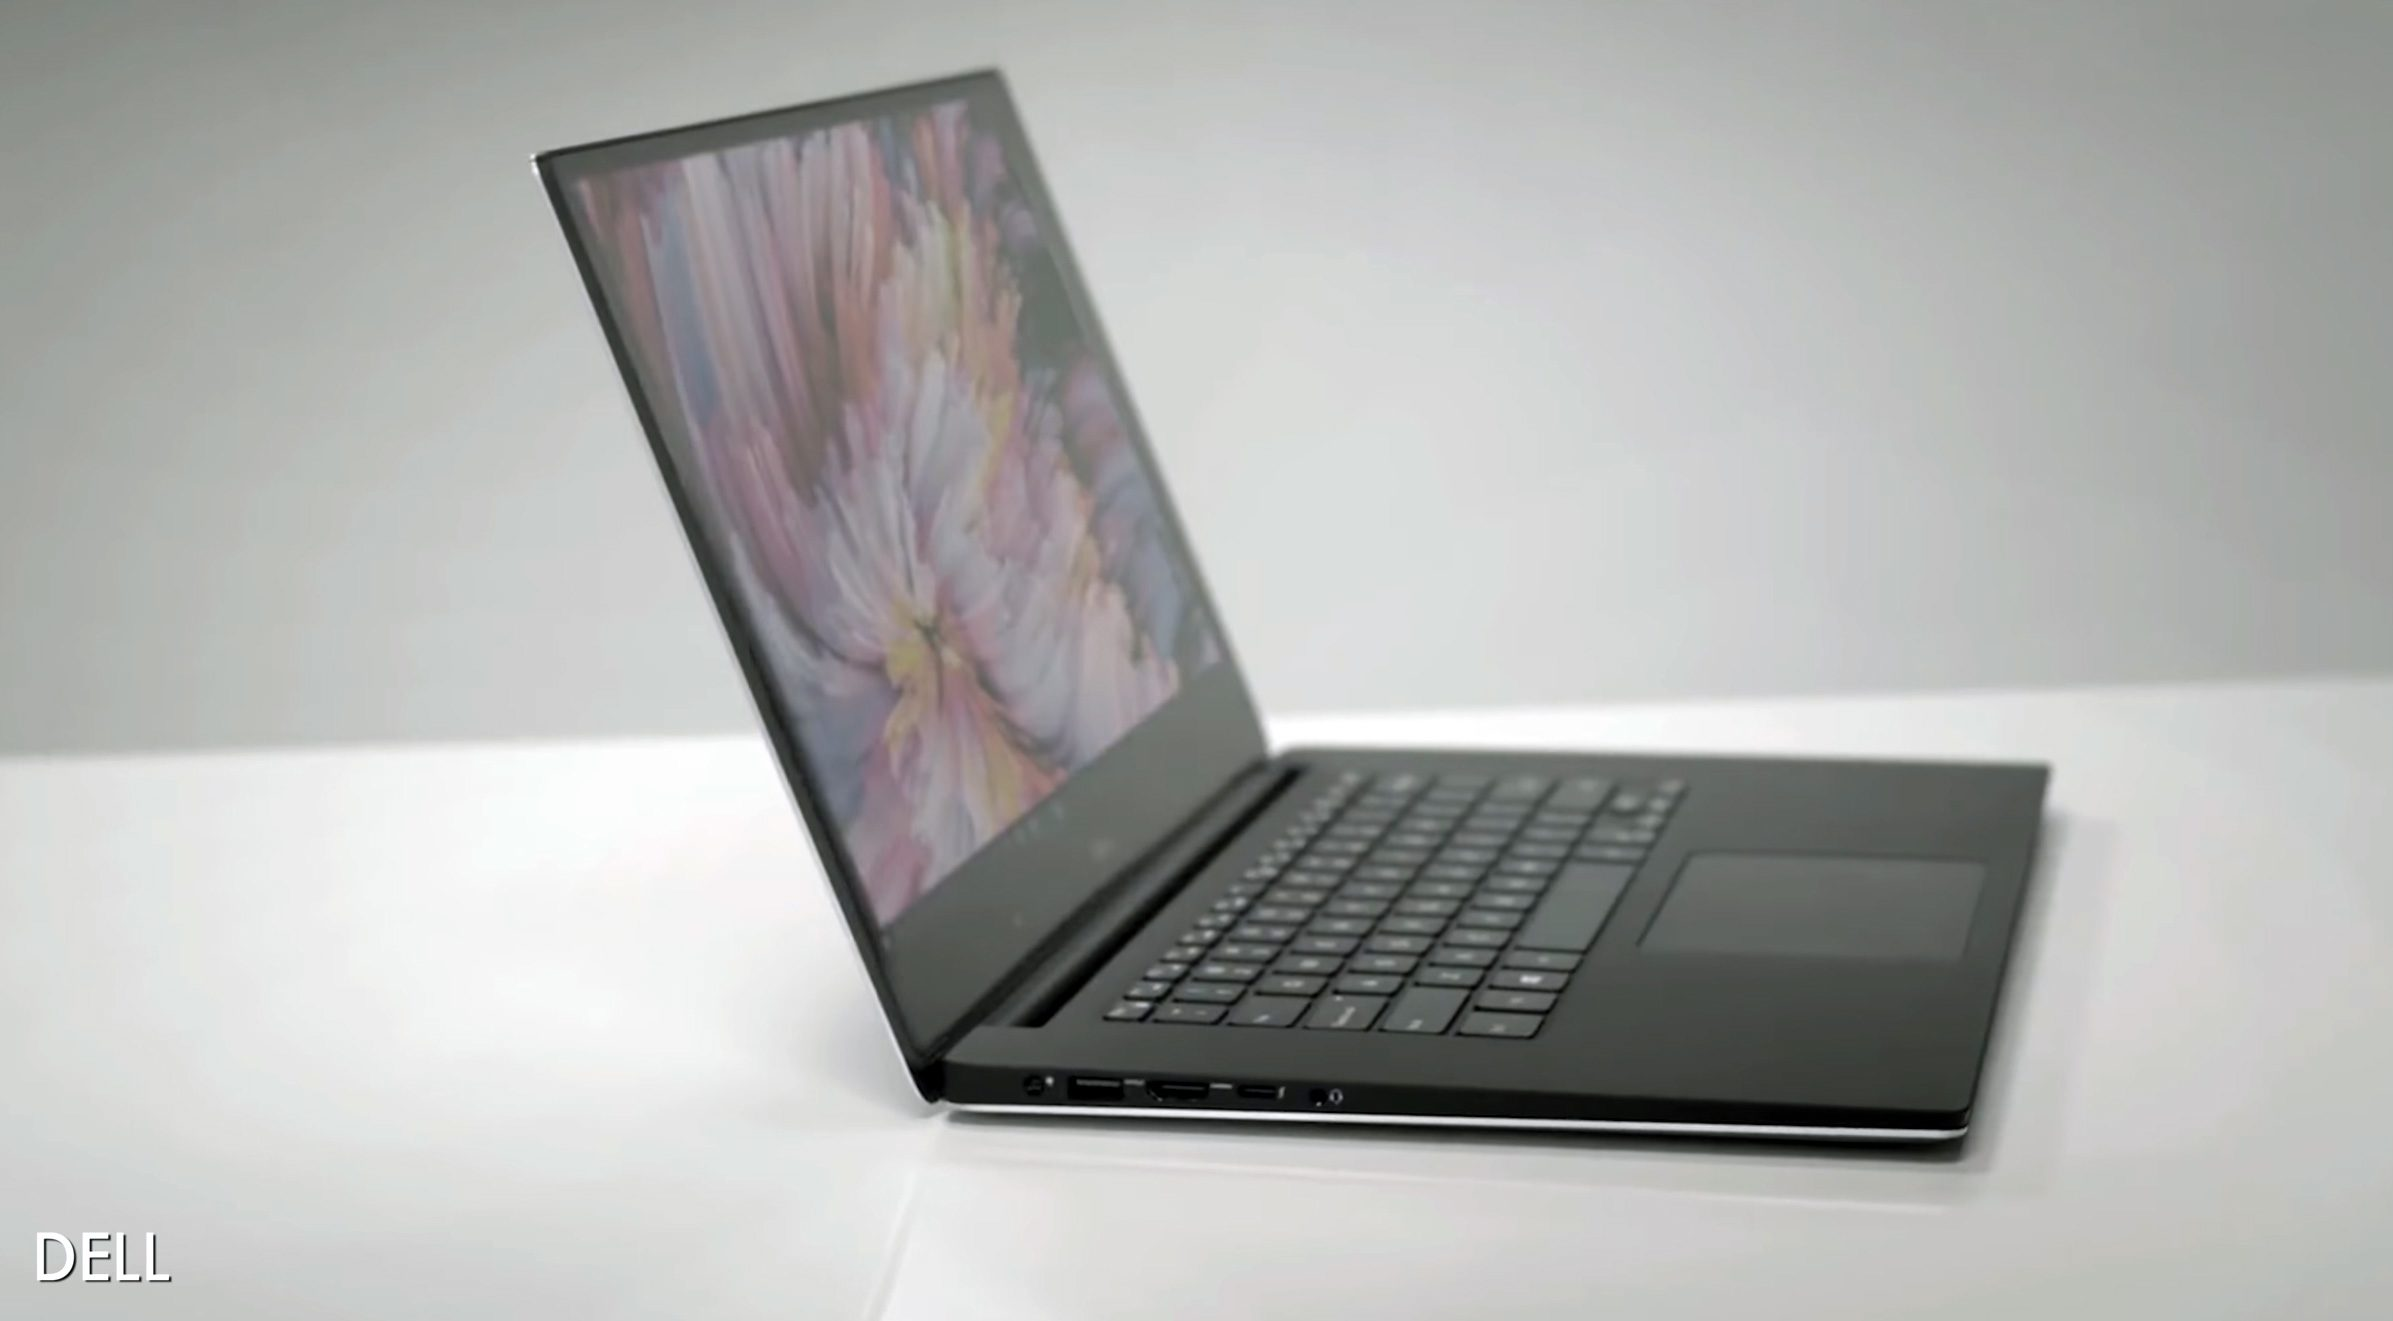 Dell XPS 15 9560 review - Core i7 CPU, Nivida 1050 graphics